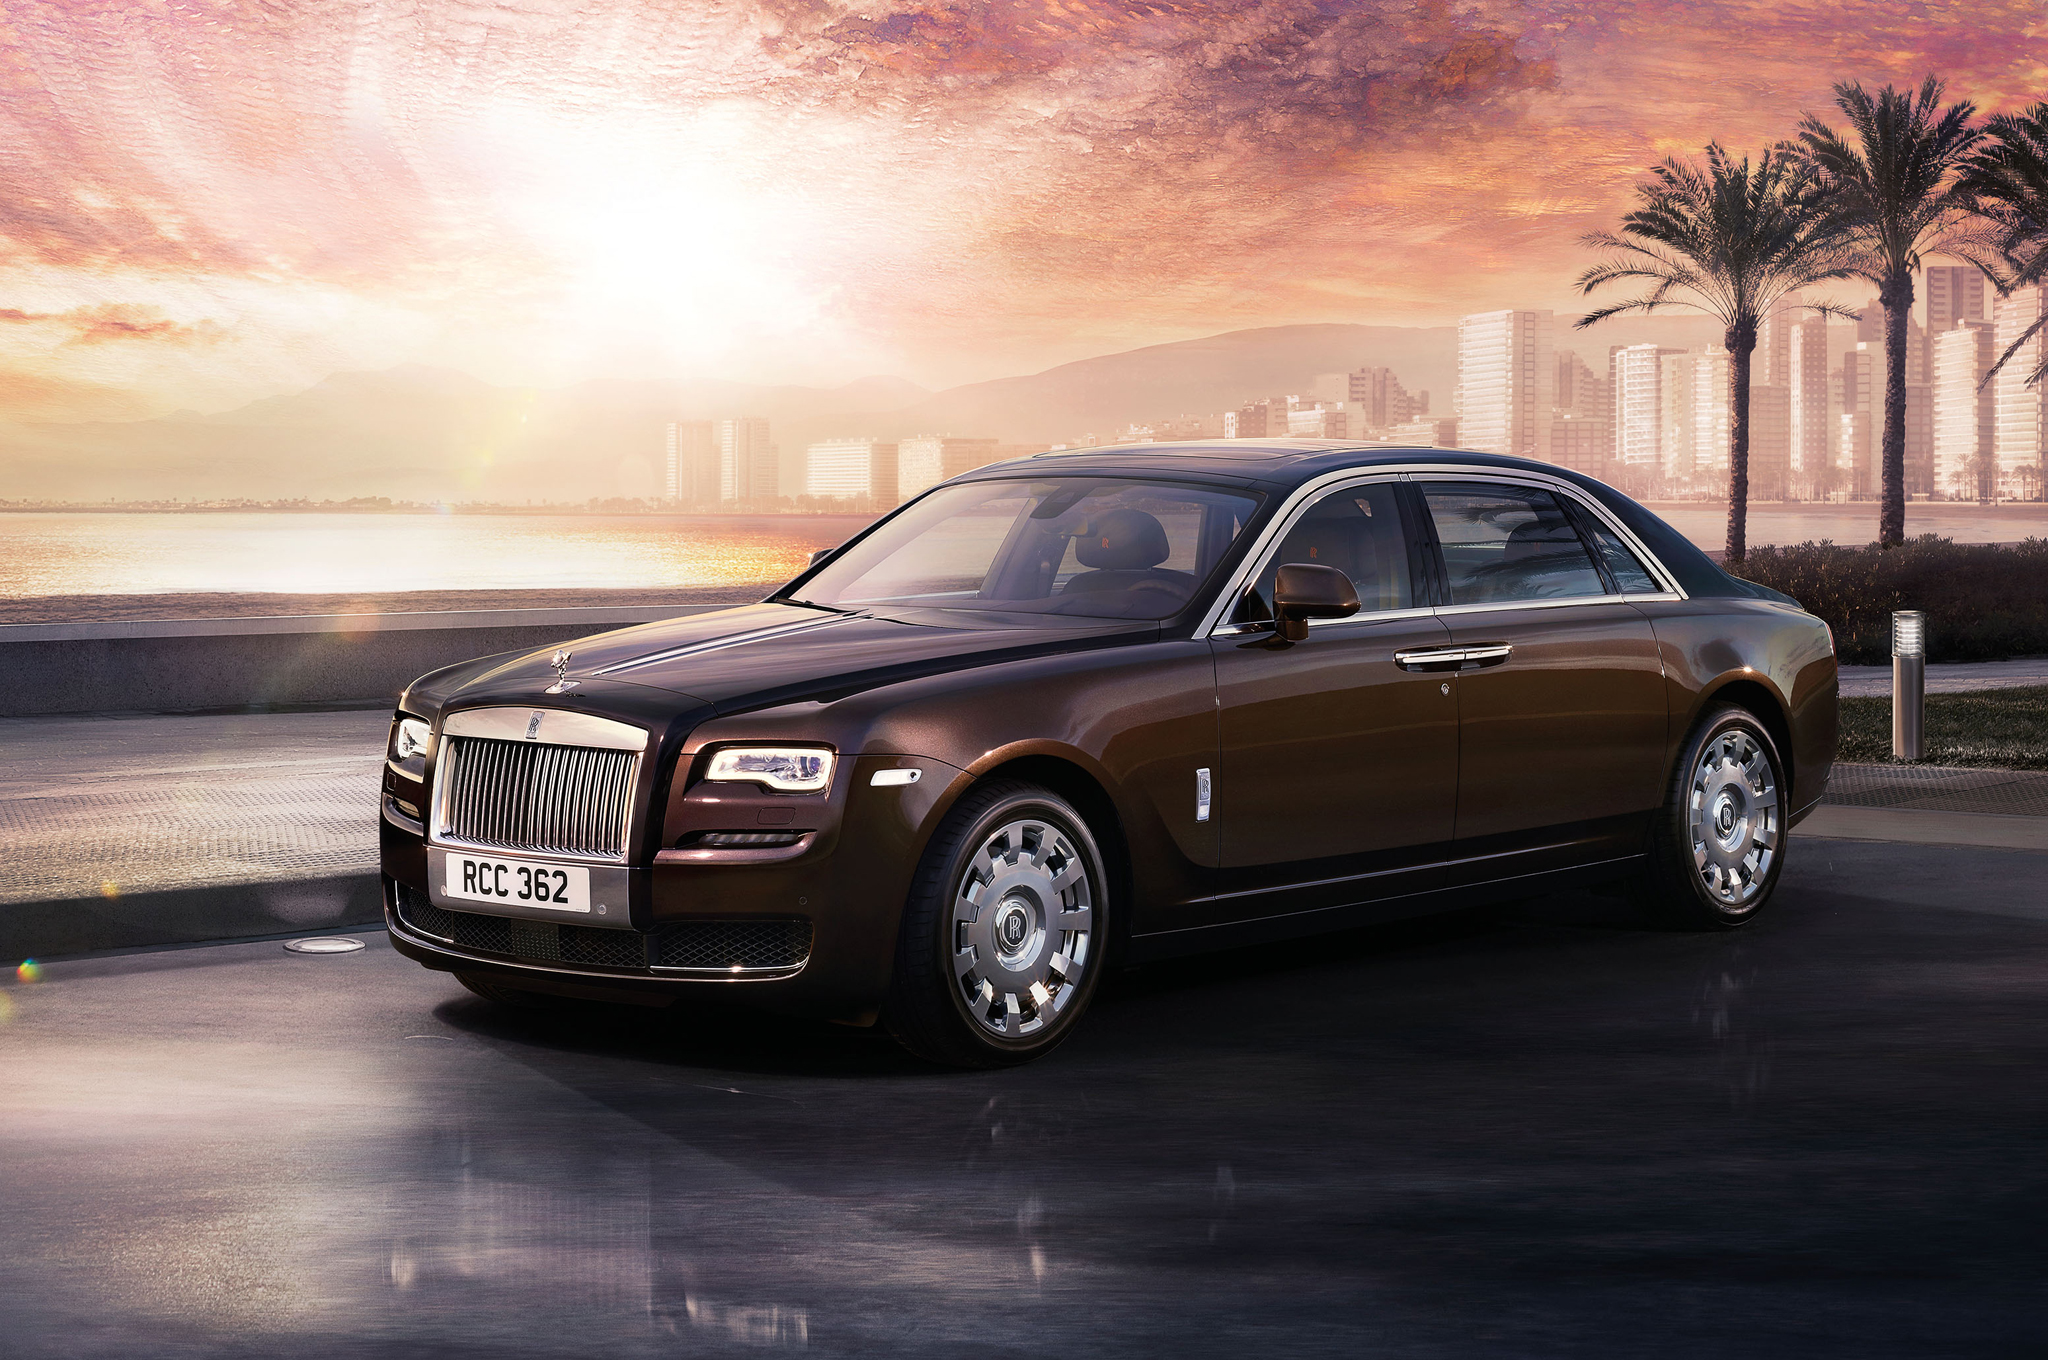 2015 Rolls Royce Ghost Series Ii #2